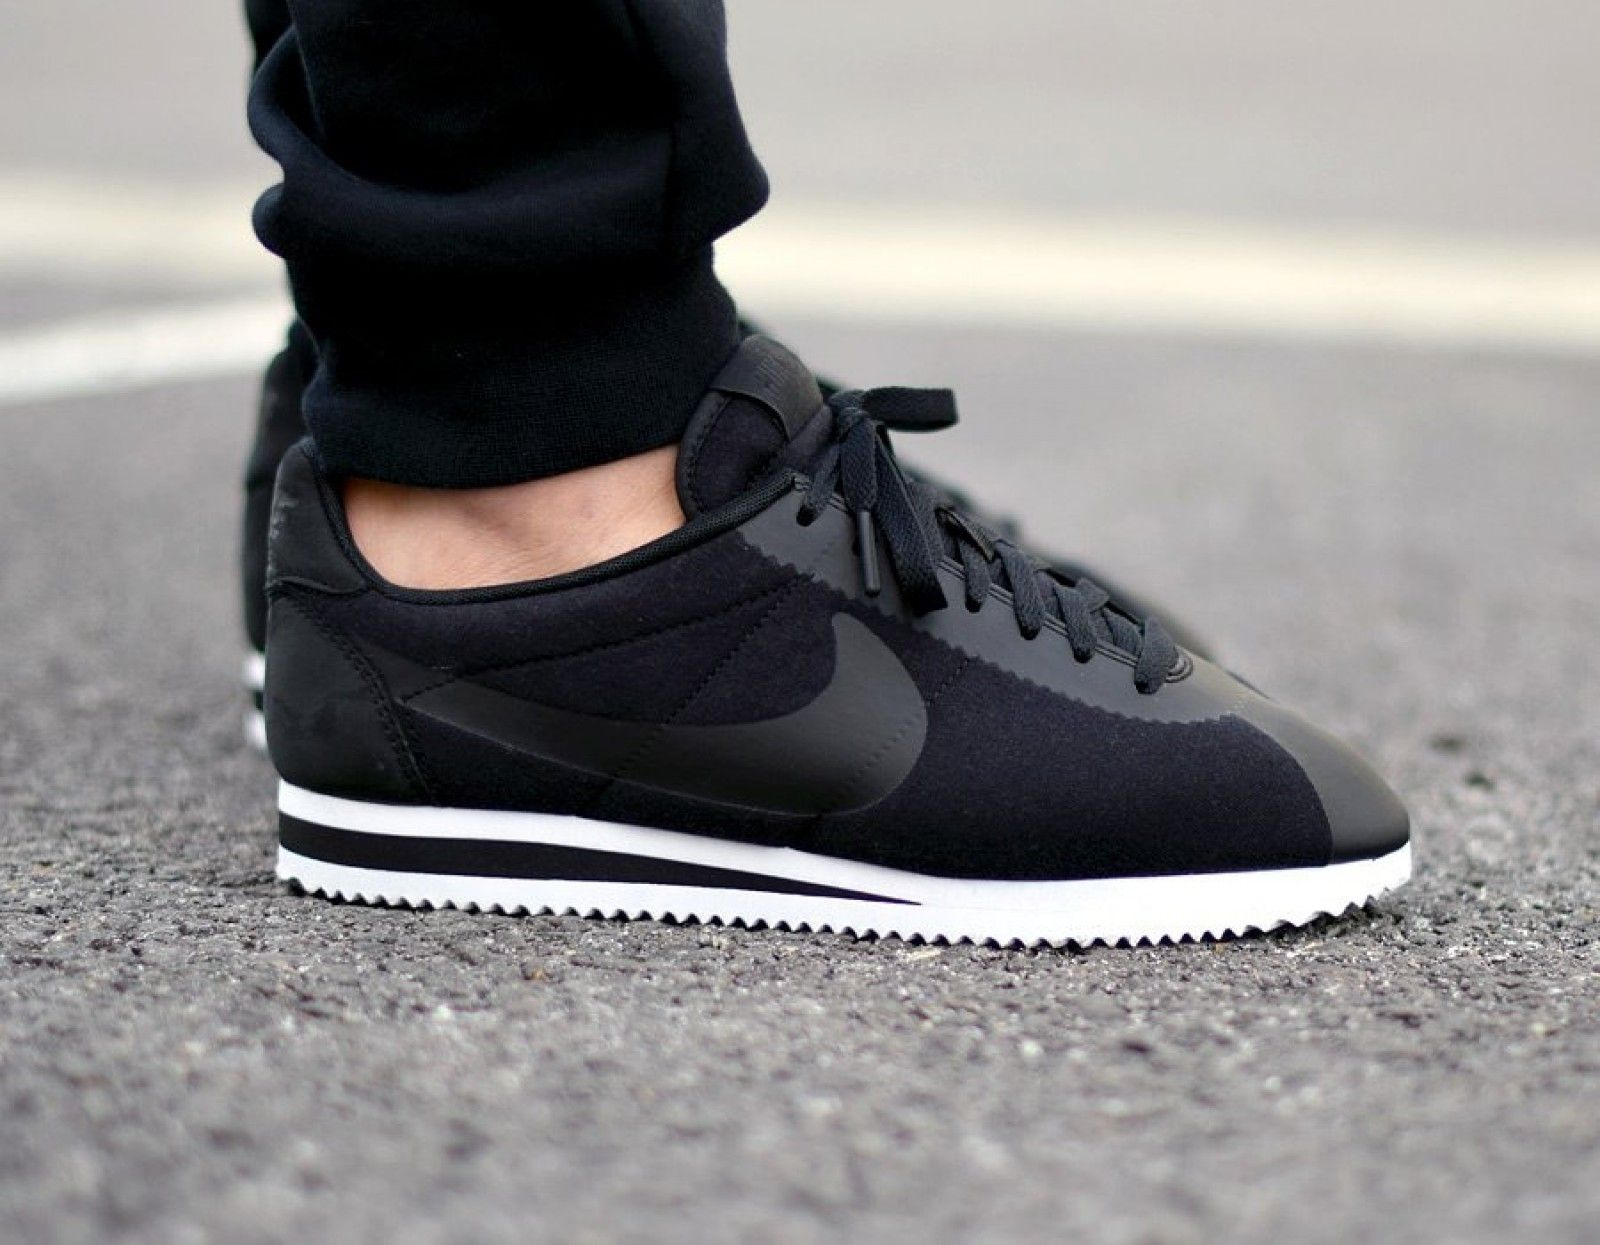 check out afa42 65e0d Nike Classic Cortez TP Black-Black - 749654-001 | Shoes in ...